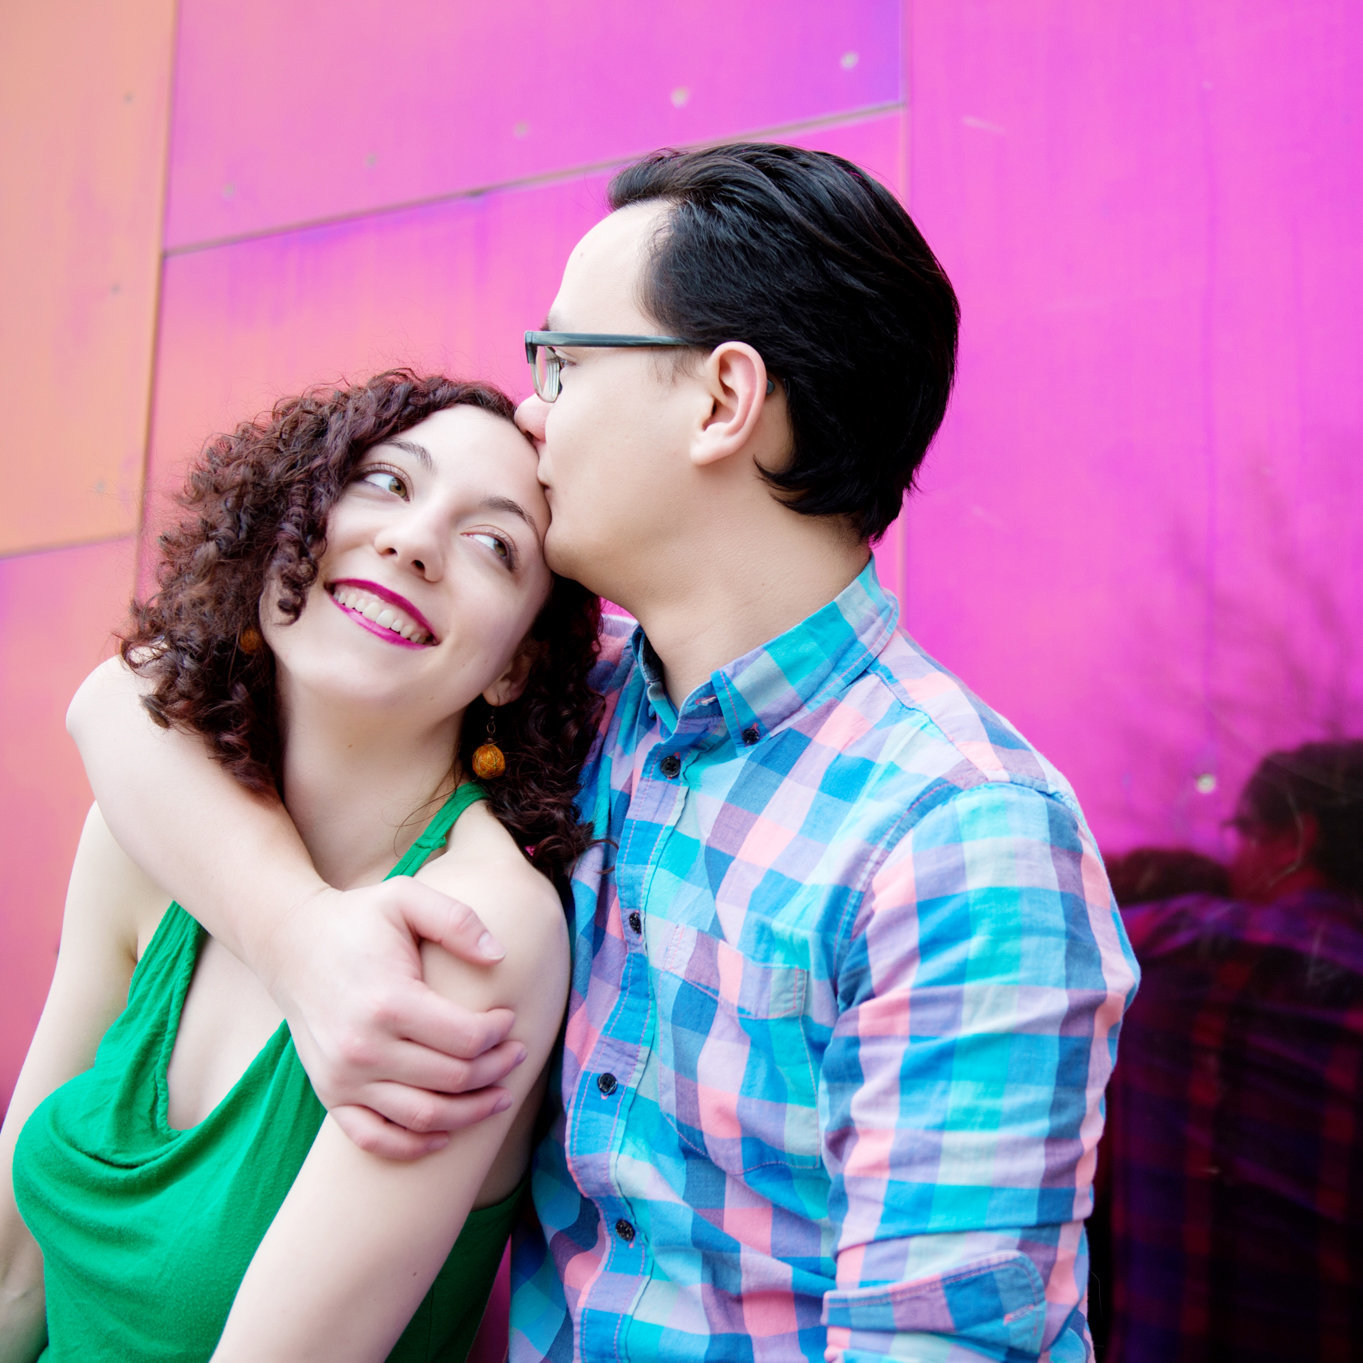 a man kisses a woman's forehead in front of a bright pink shiny wall